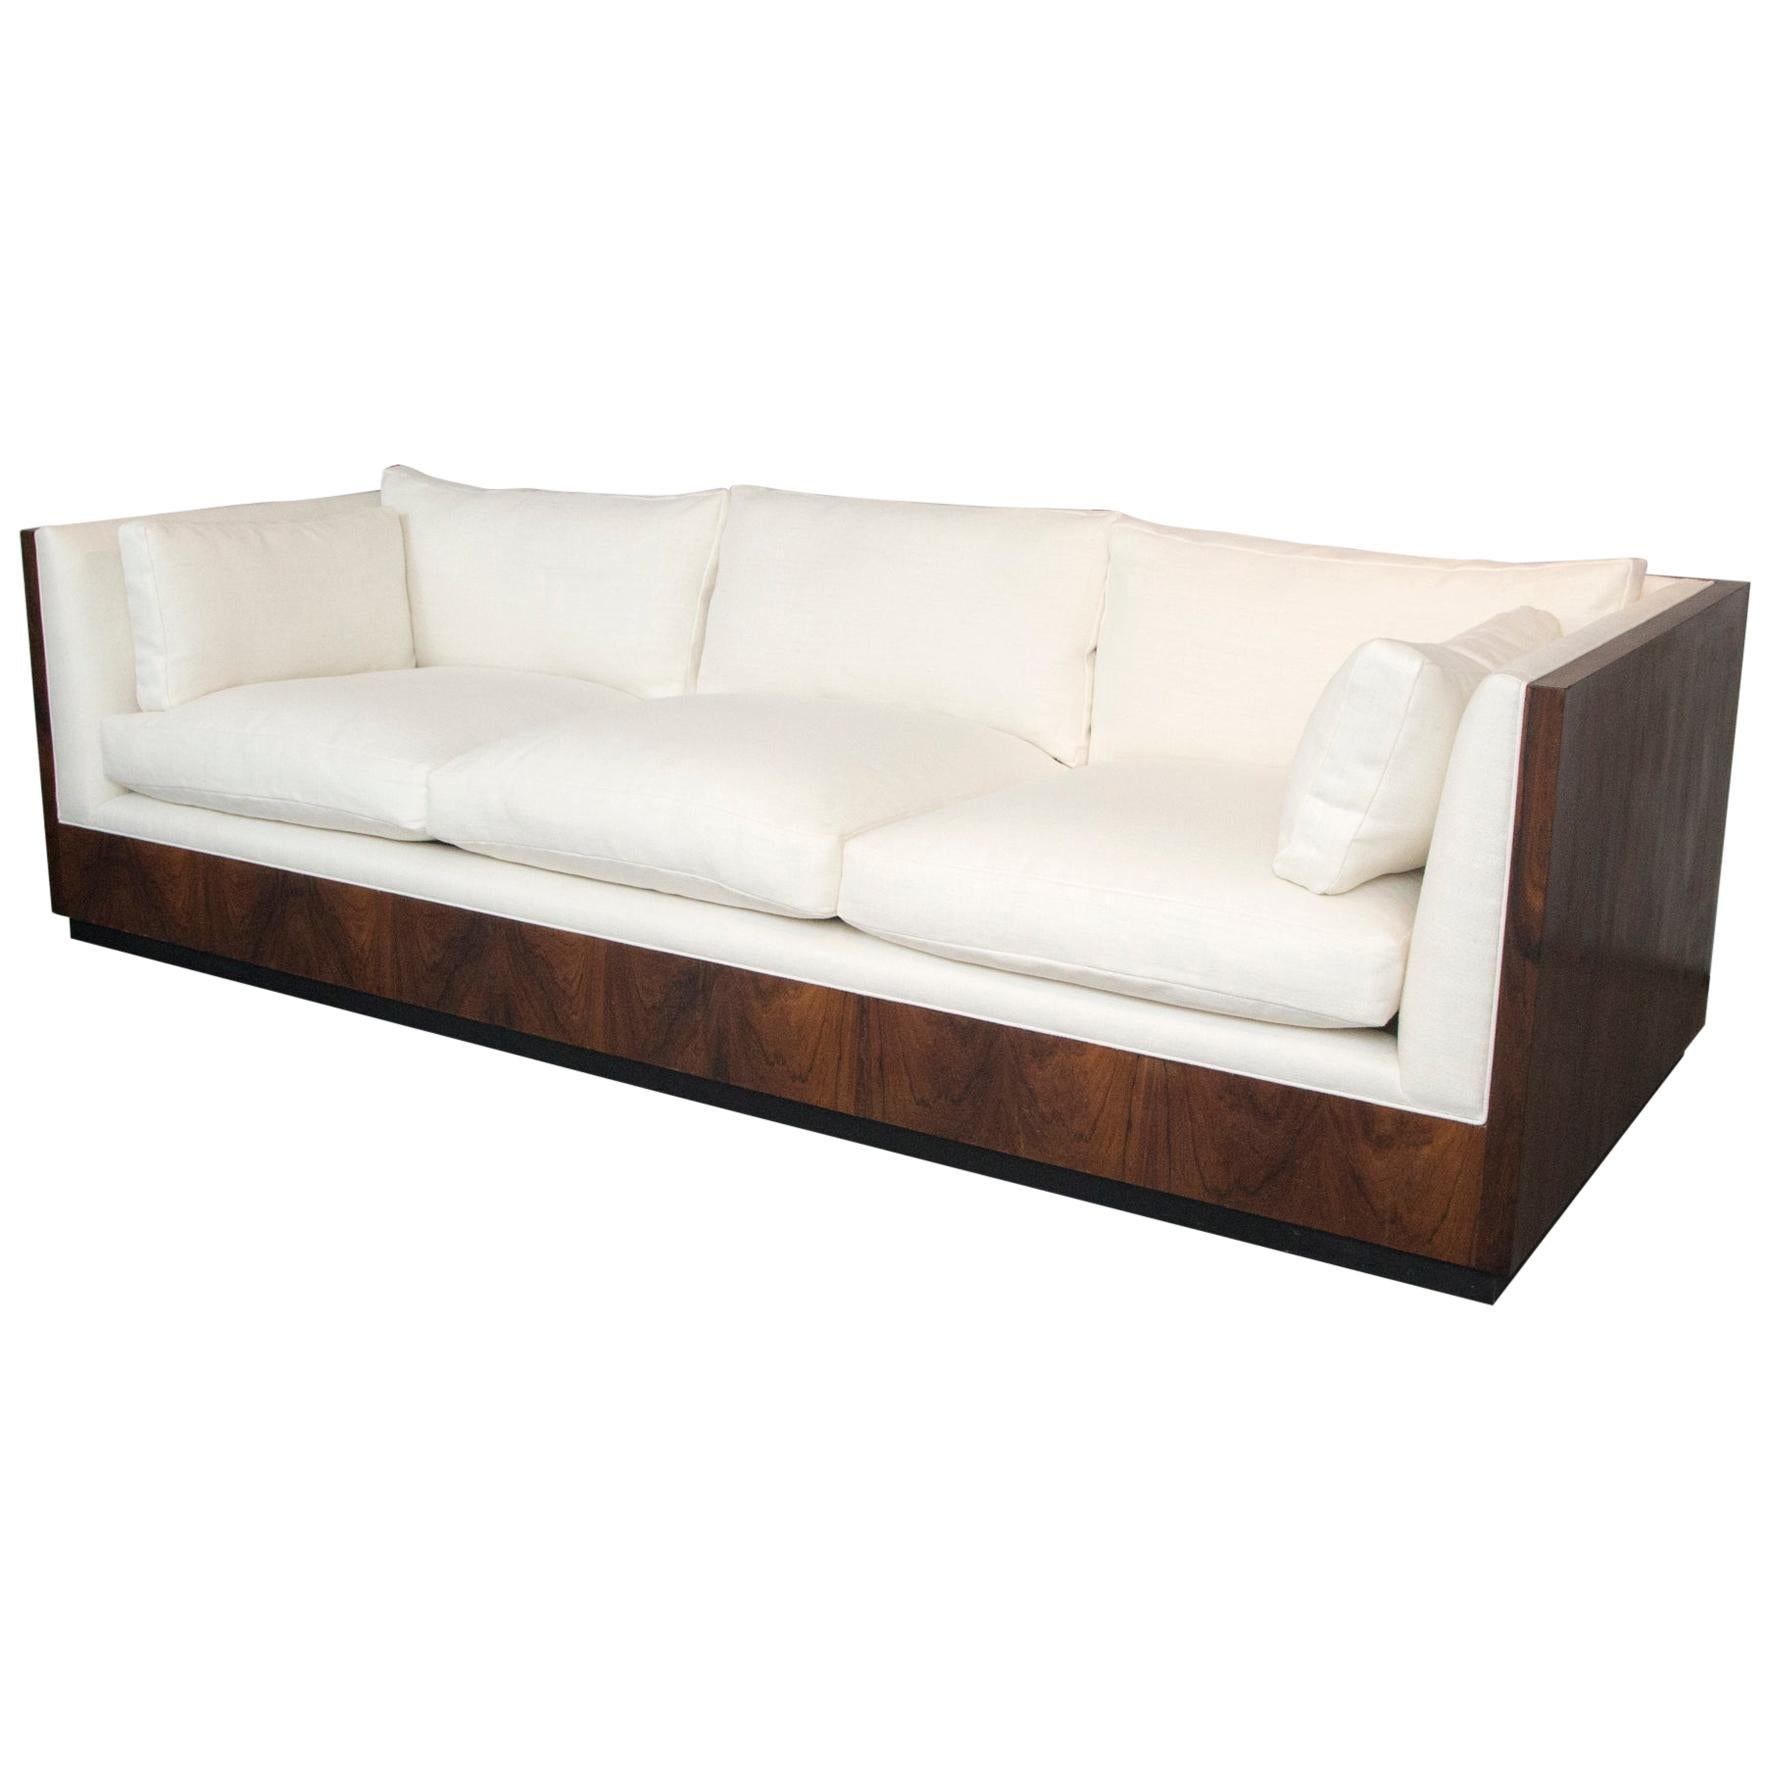 Super Milo Baughman Rosewood Sofa Newly Upholstered In Belgian White Linen Gmtry Best Dining Table And Chair Ideas Images Gmtryco